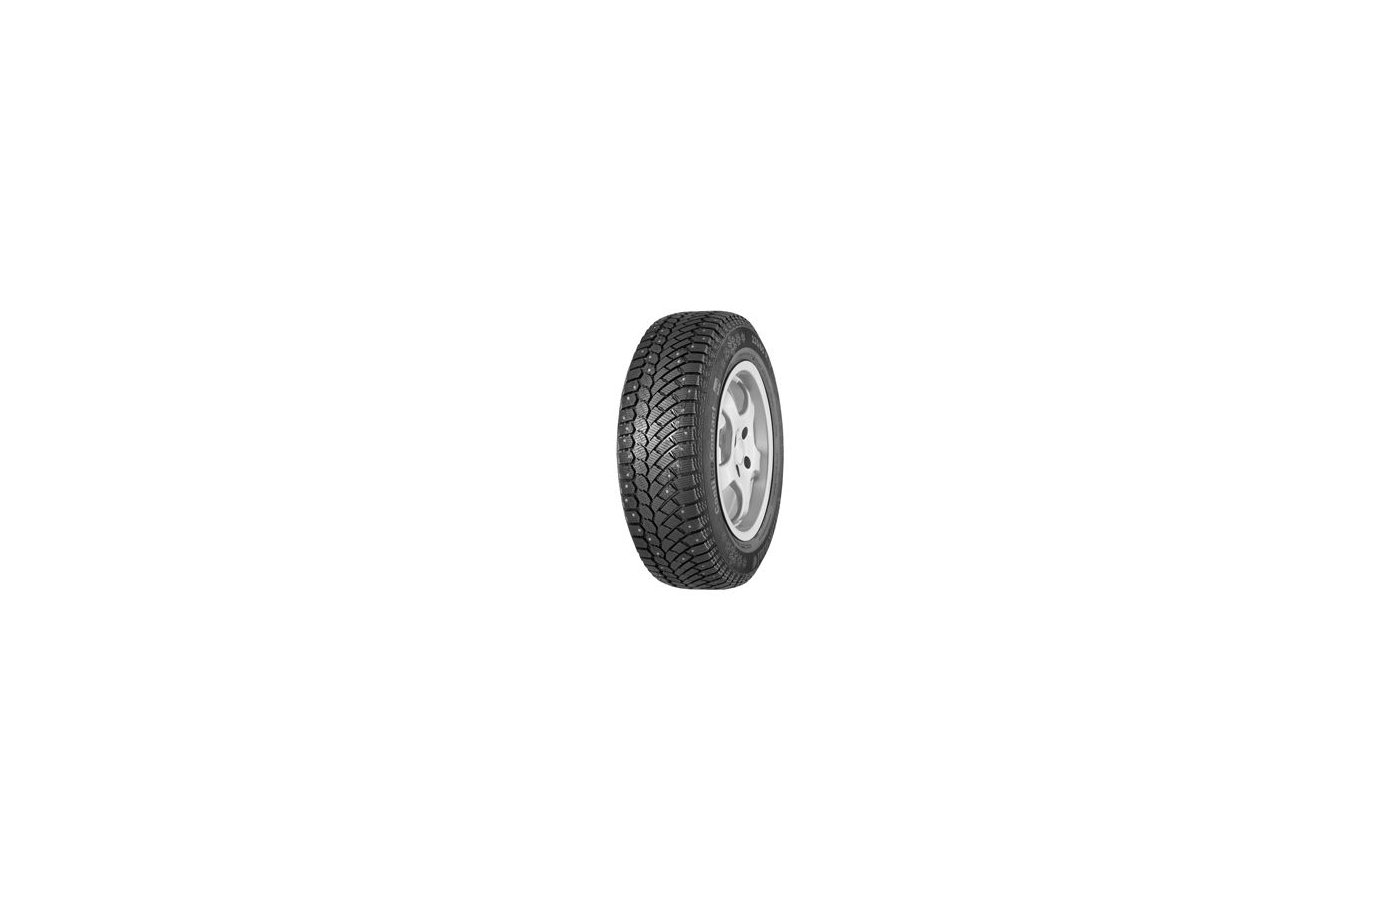 Шина Continental ContiIceContact FR 235/45 R17 TL 97T XL шип